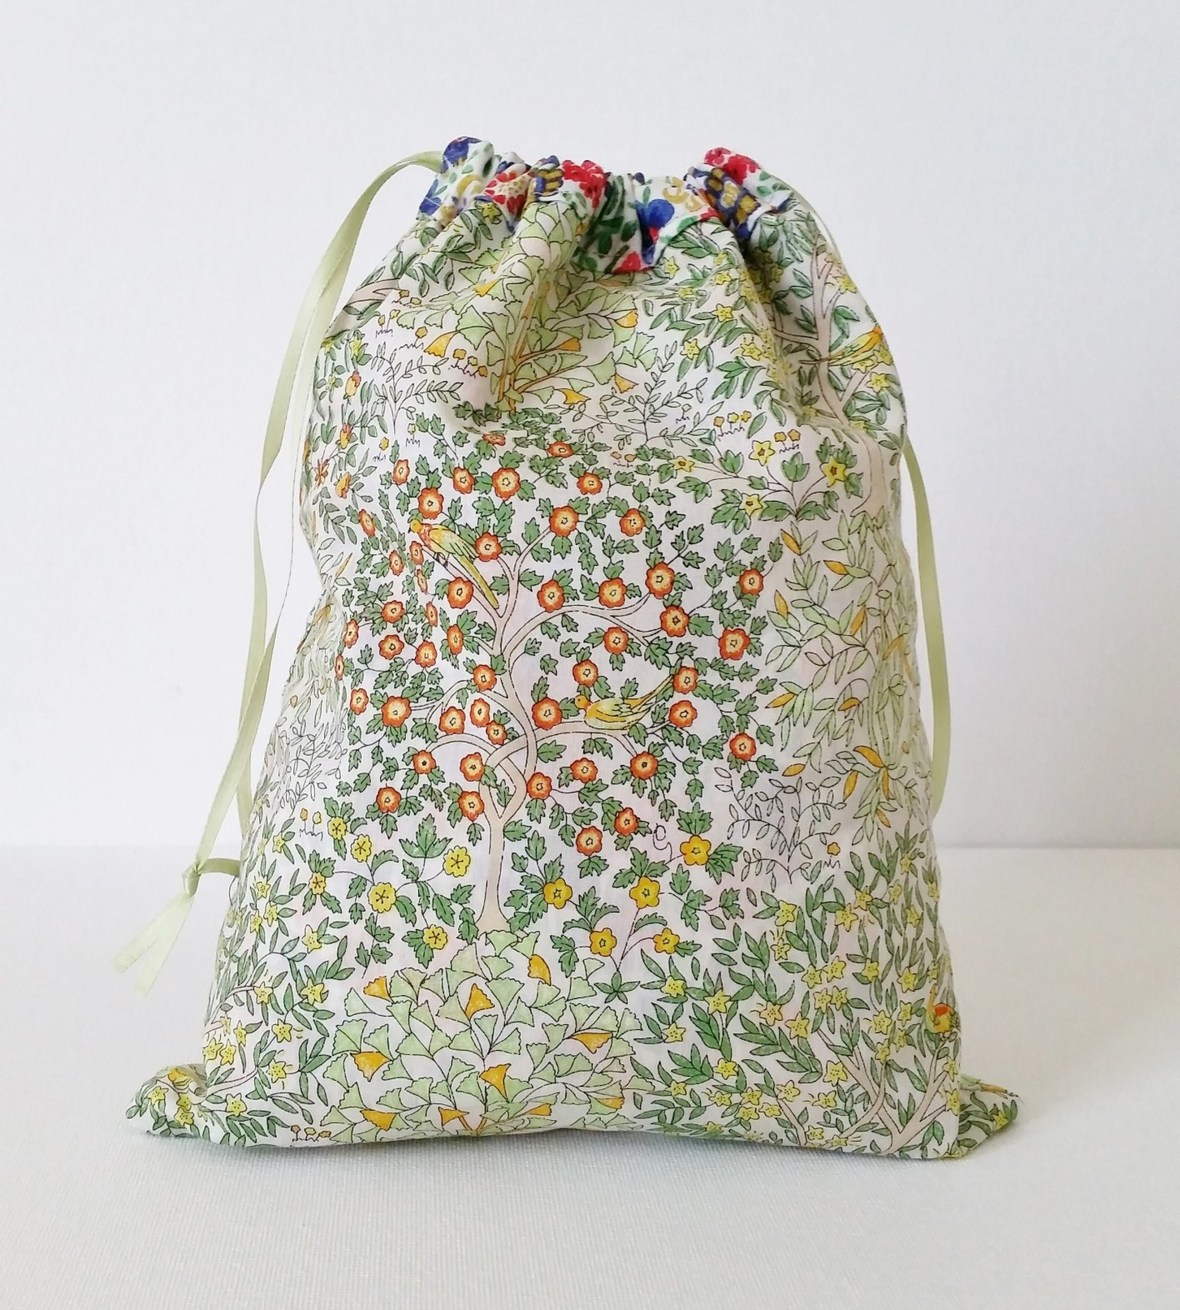 Mad-For-Fabric-Reversible-Drawstring-Bag-Display2